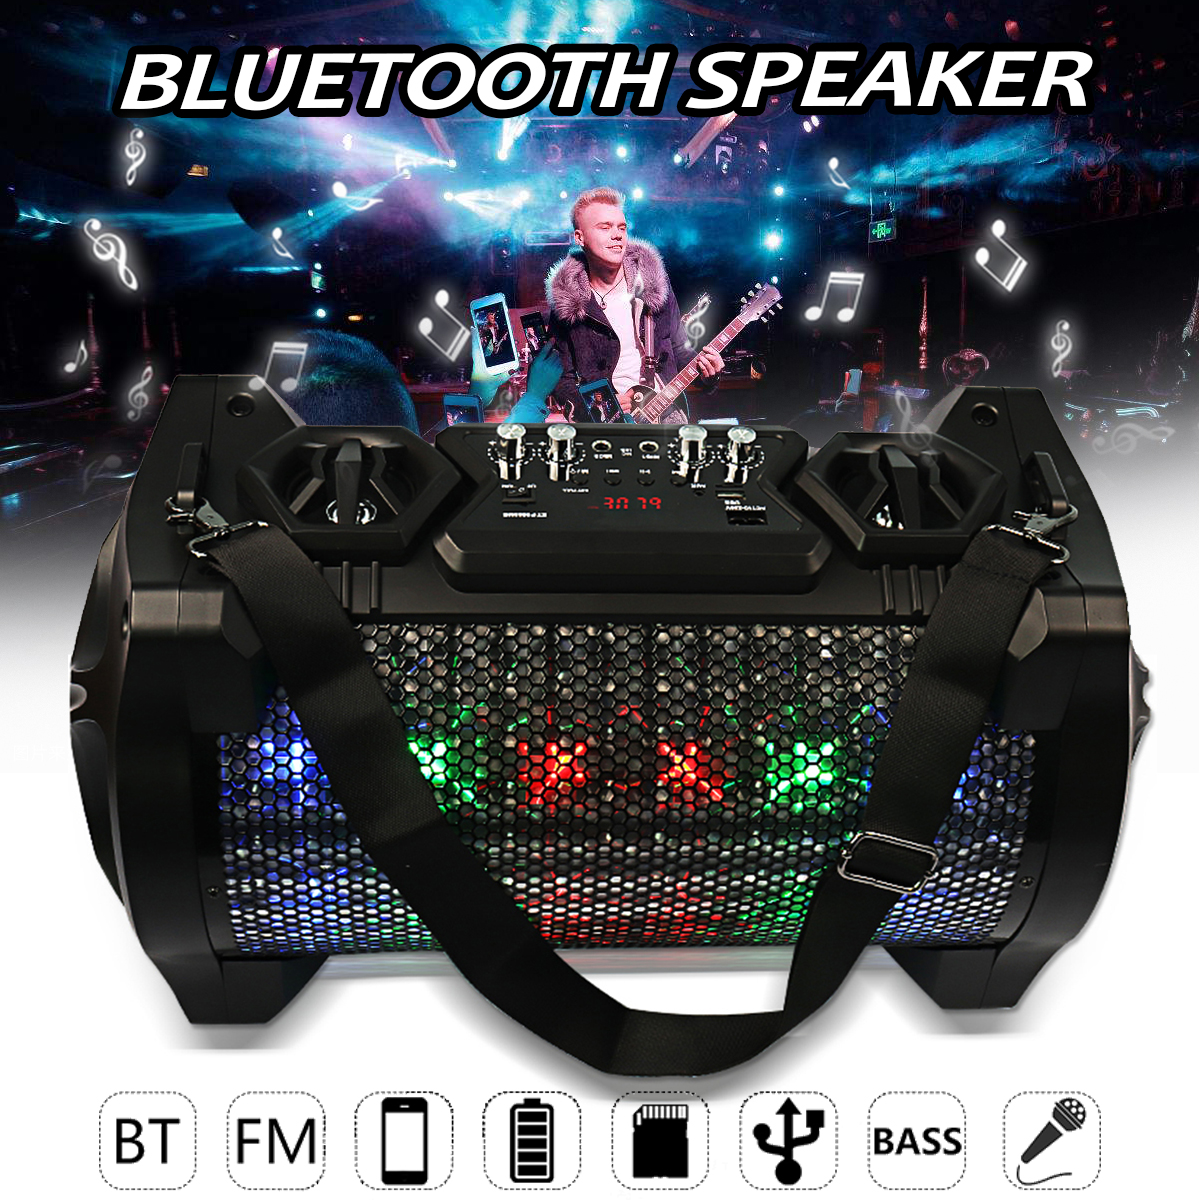 Portable Wireless Bluetooth Speaker Bass Stereo FM Radio AUX/USB/TF Card Loudspeaker Subwoofer Handfree For Outdoor Music Player 3 speakers bluetooth speaker wireless stereo subwoofer heavy bass speaker music player support tf card fm radio boombox